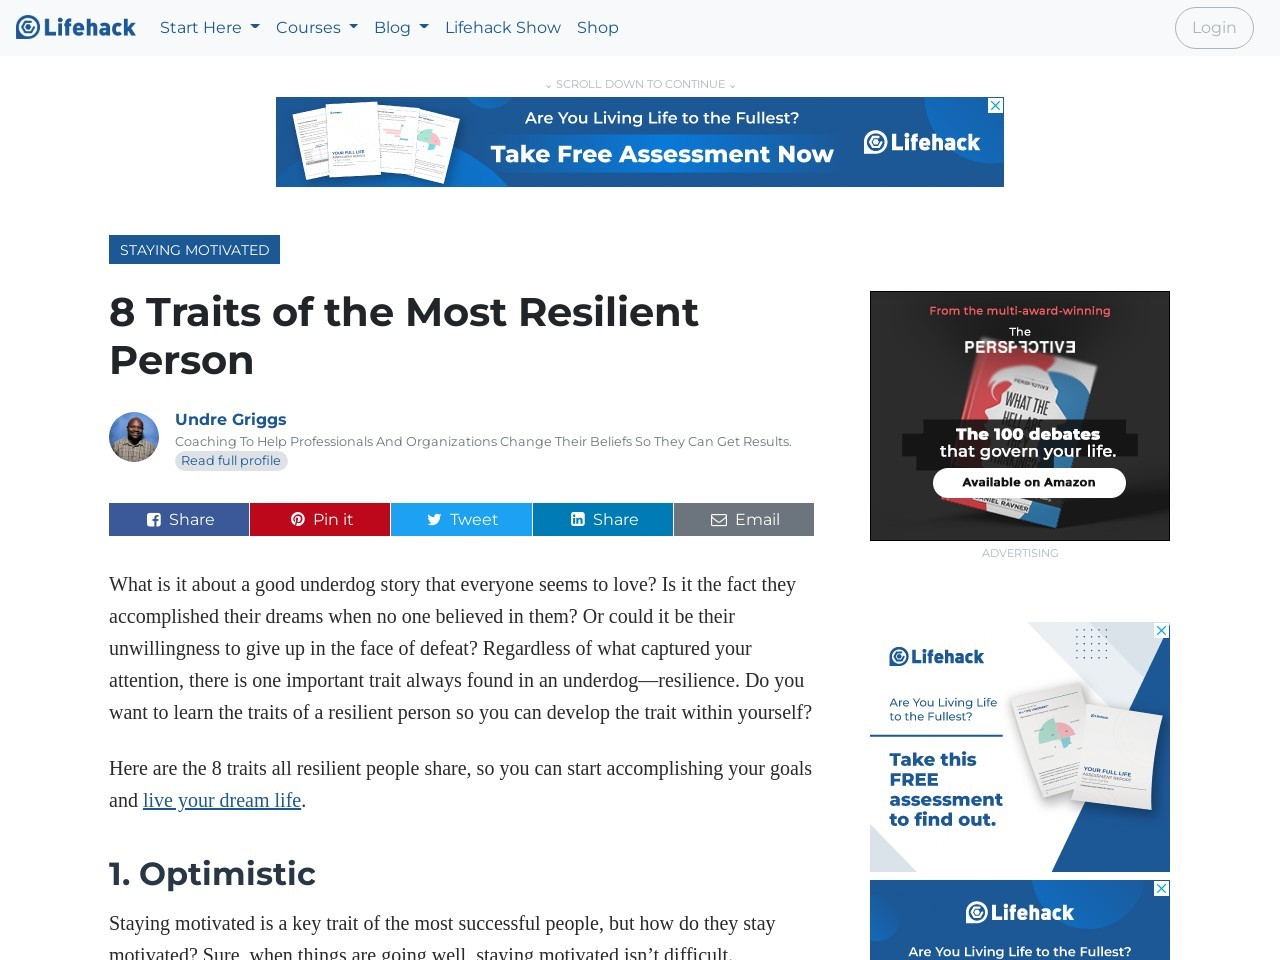 8 Traits of the Most Resilient Person